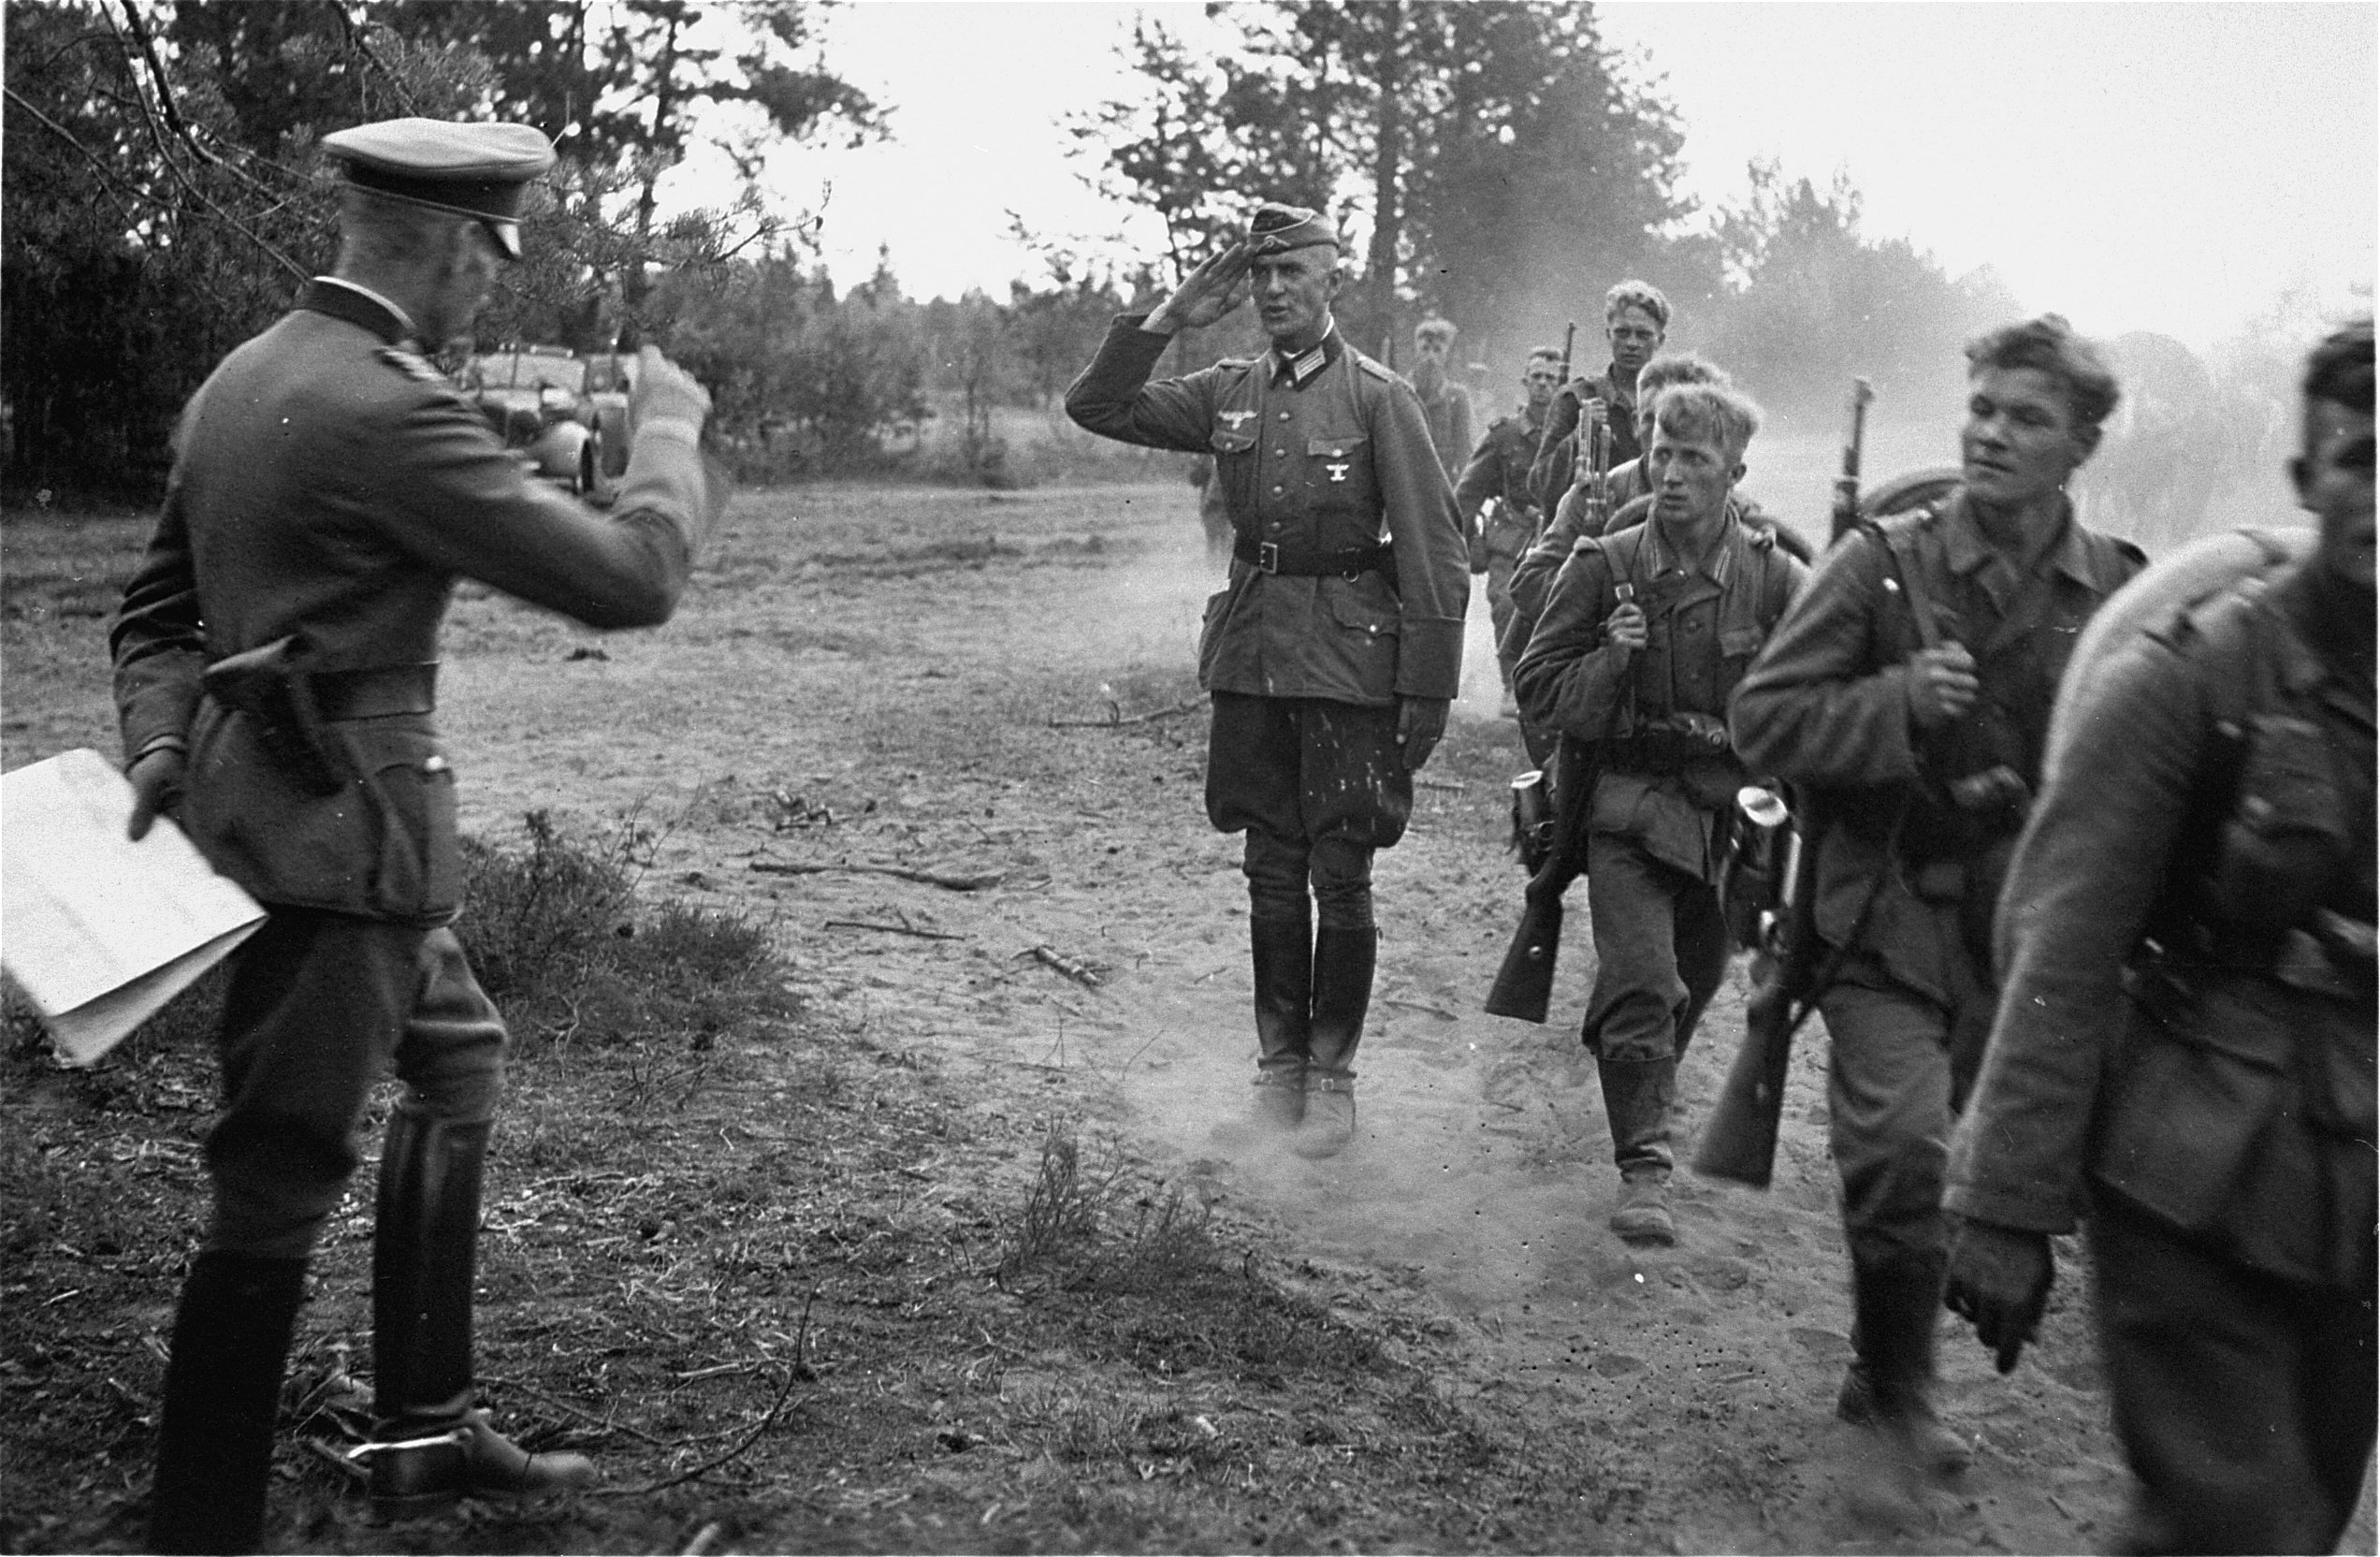 German infantry during the invasion of the Soviet Union in 1941. Credit: United States Holocaust Memorial Museum